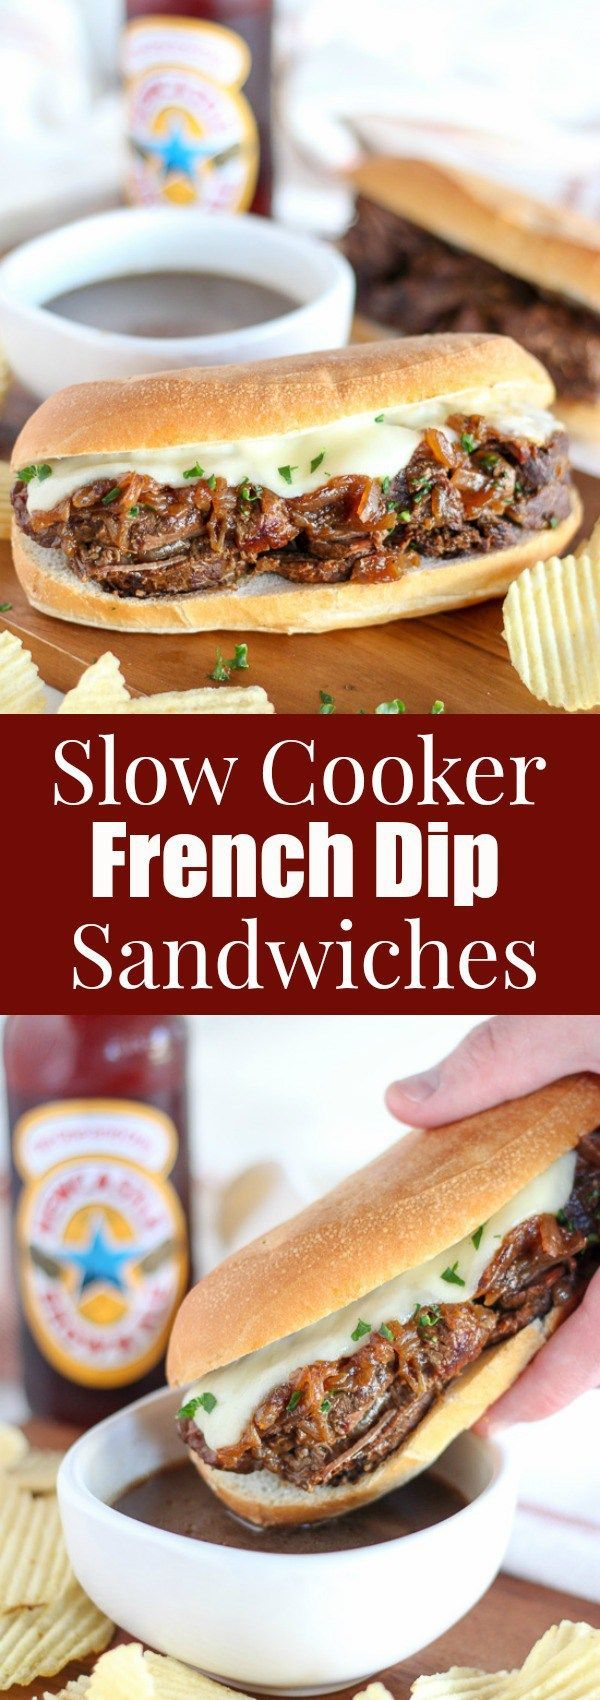 Slow Cooker French Dip Sandwiches - An easy recipe for French Dip Sandwiches made in the slow cooker. Tender beef, caramelized onions and melted cheese with au jus on the side for dipping.